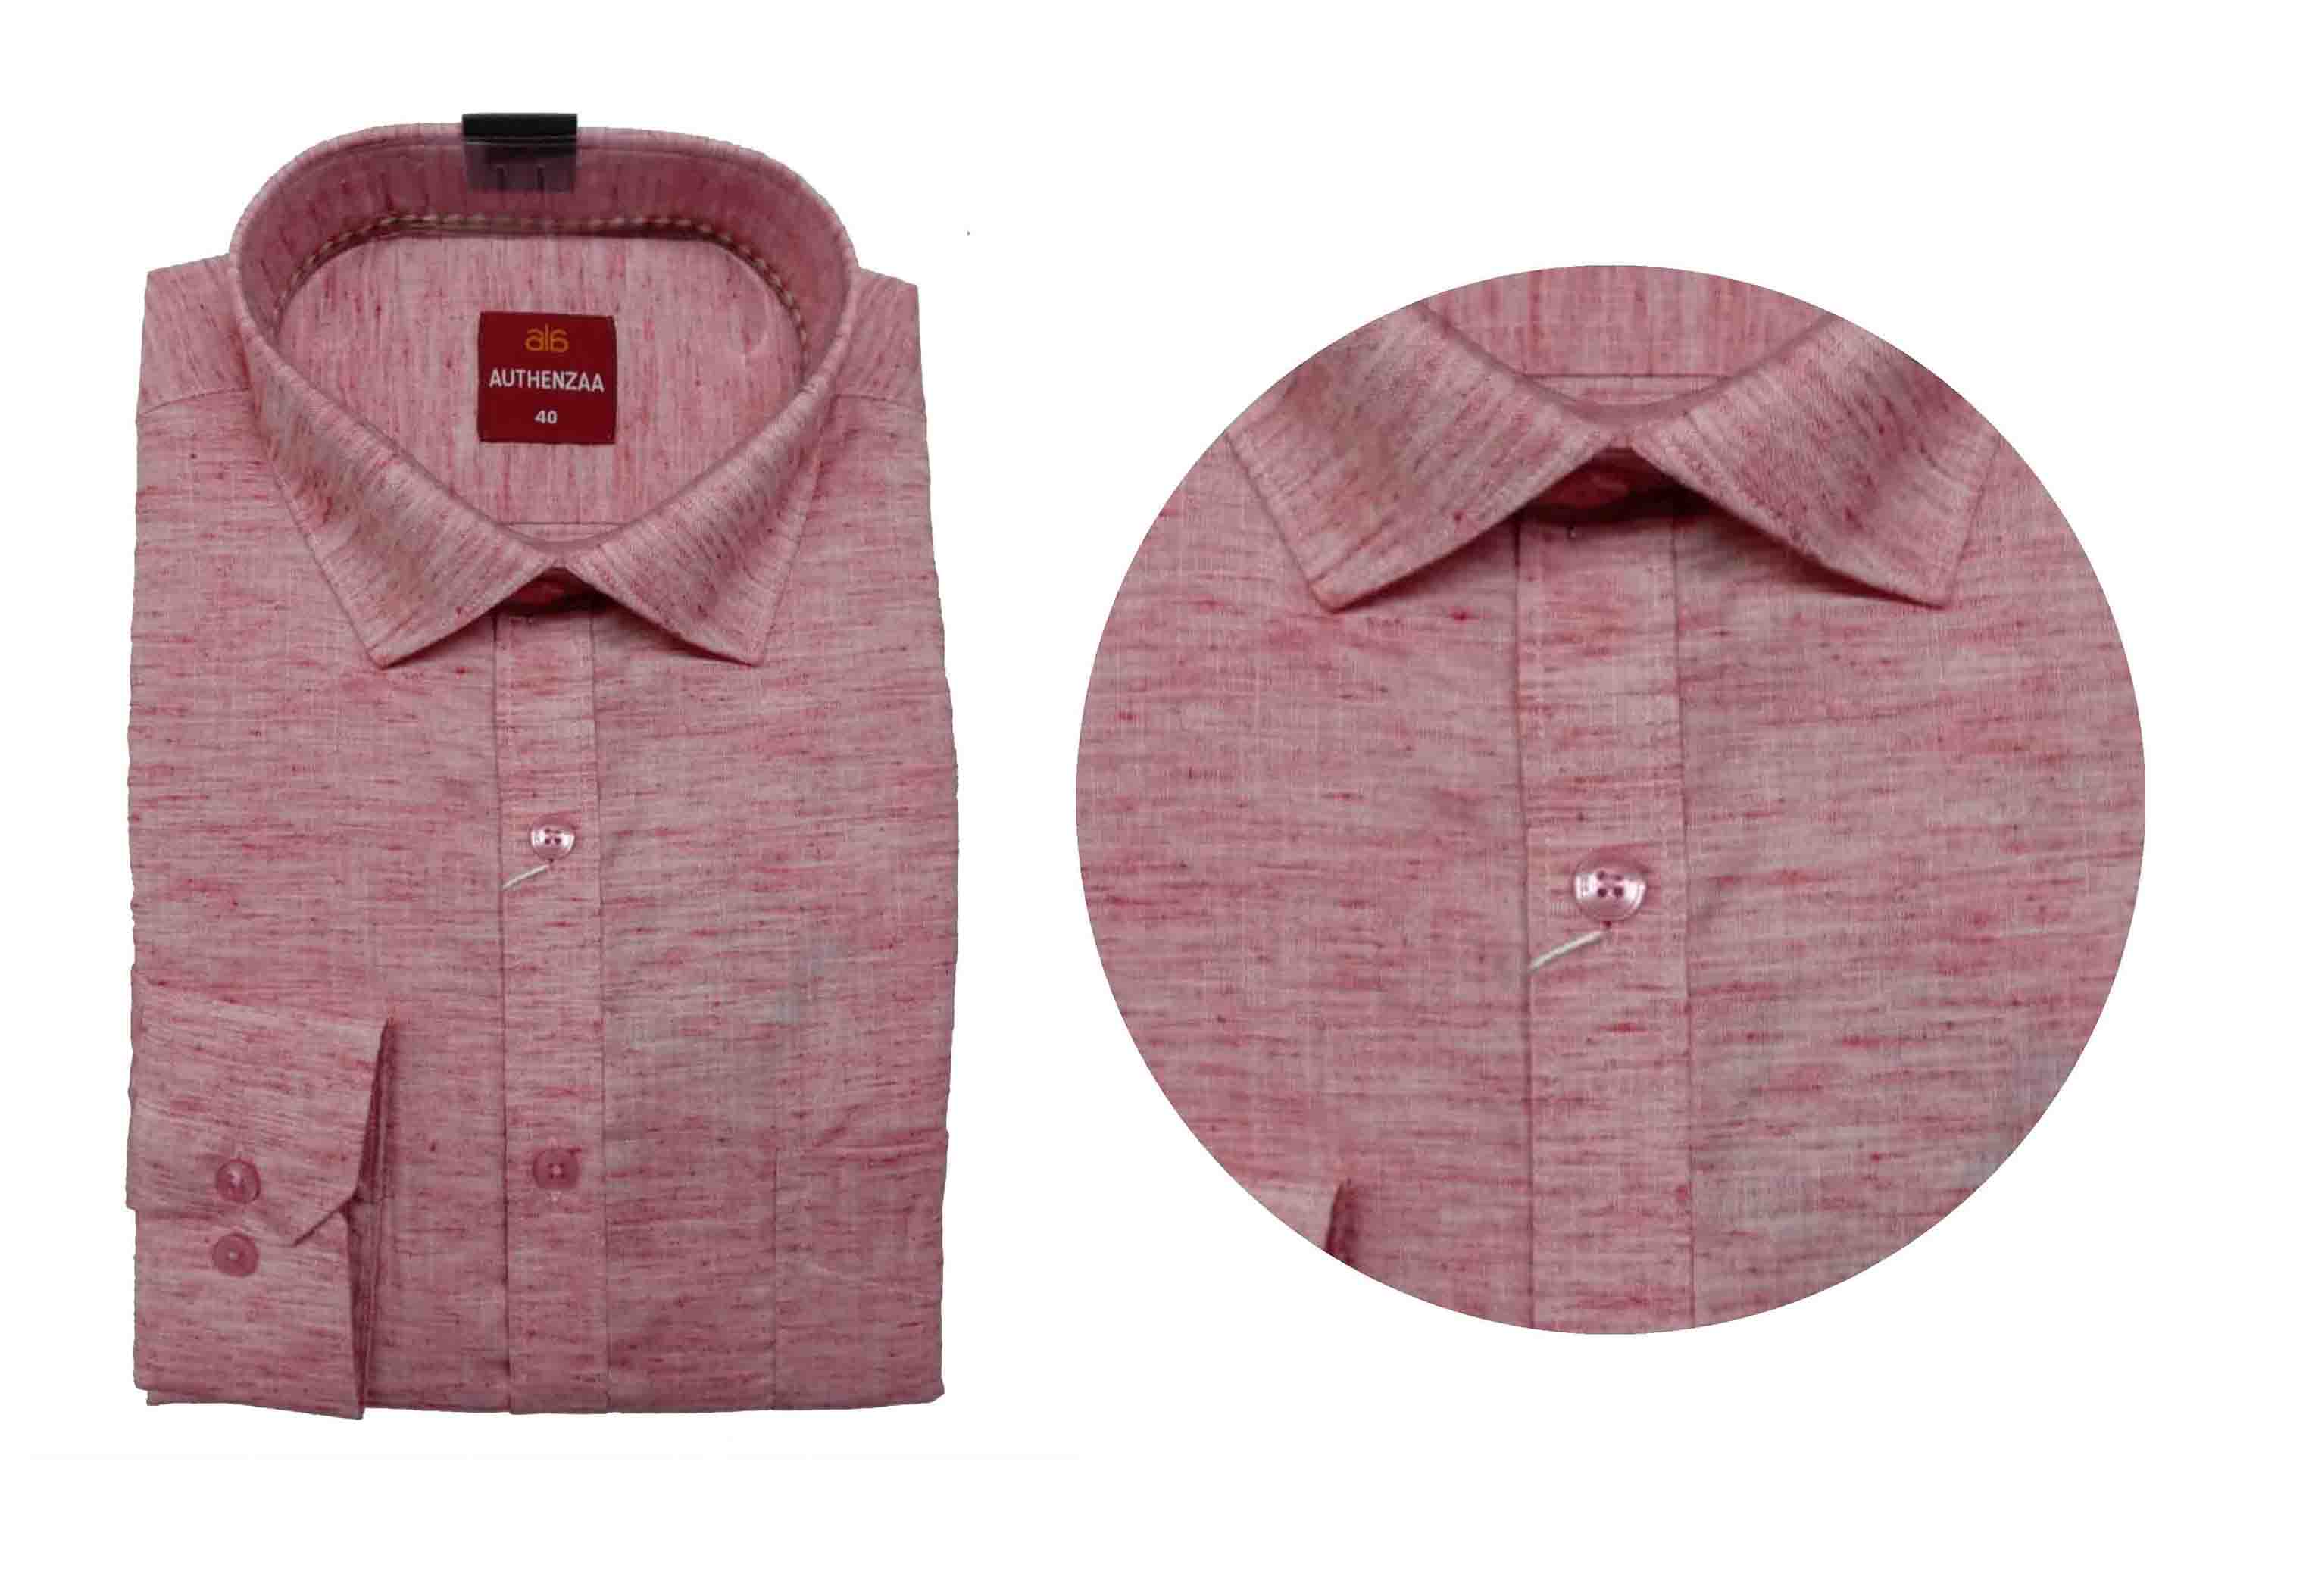 BT WALKMAN 2019-LINEN RED MEN'S FORMAL SHIRT